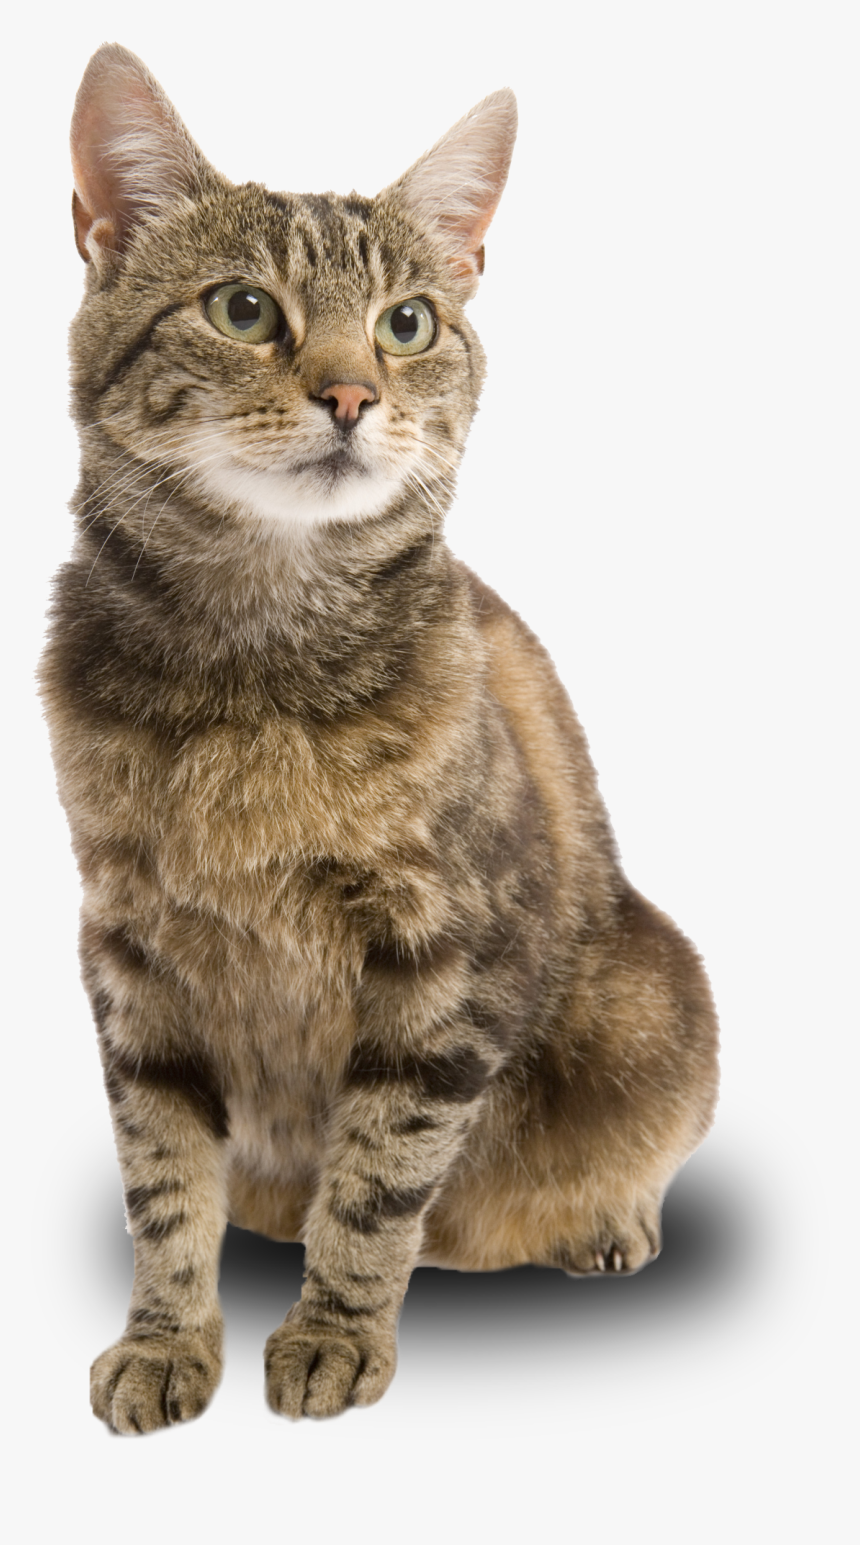 Female Brown Tabby Cat Hd Png Download Kindpng